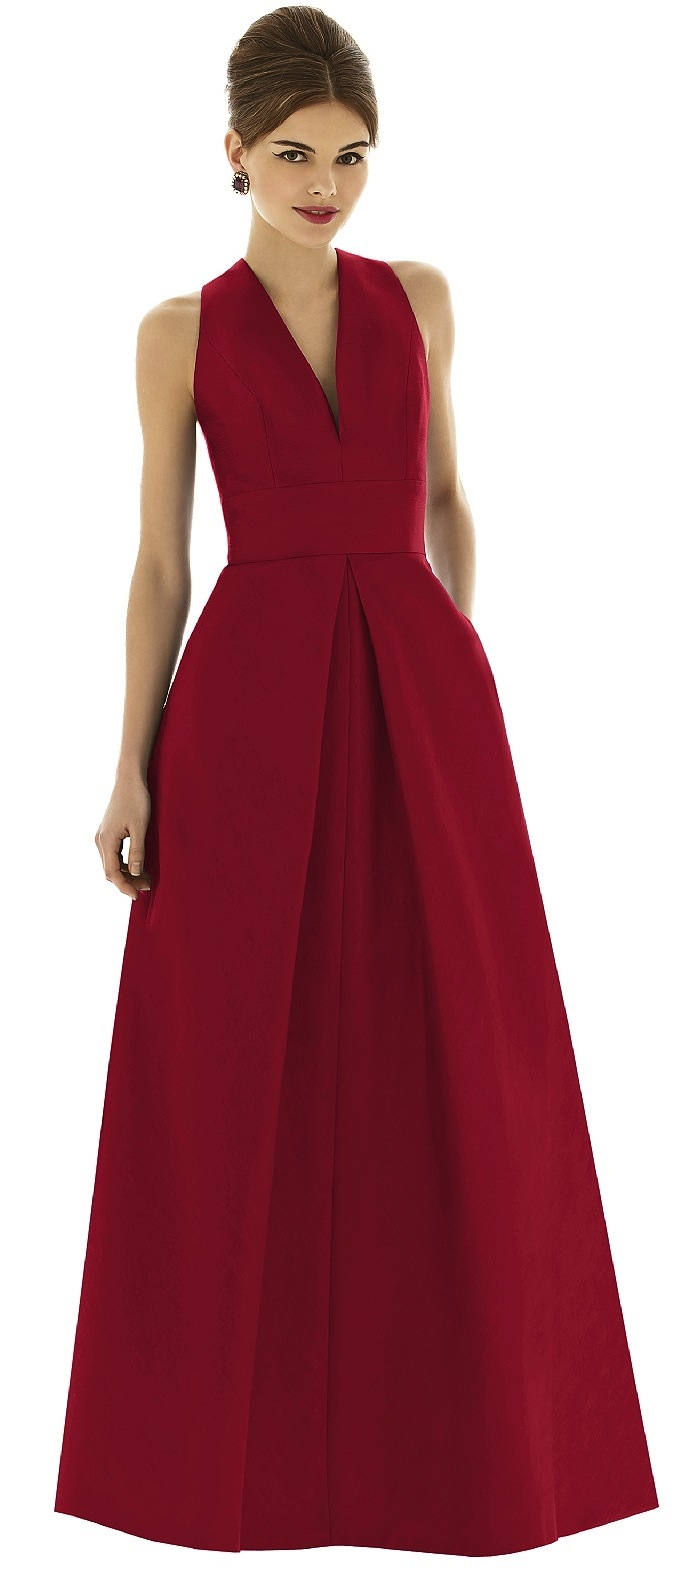 Alfred sung bridesmaid dressesalfred sung dresses d 611the dessy alfred sung bridesmaid dresses alfred sung d611 loading zoom ombrellifo Gallery